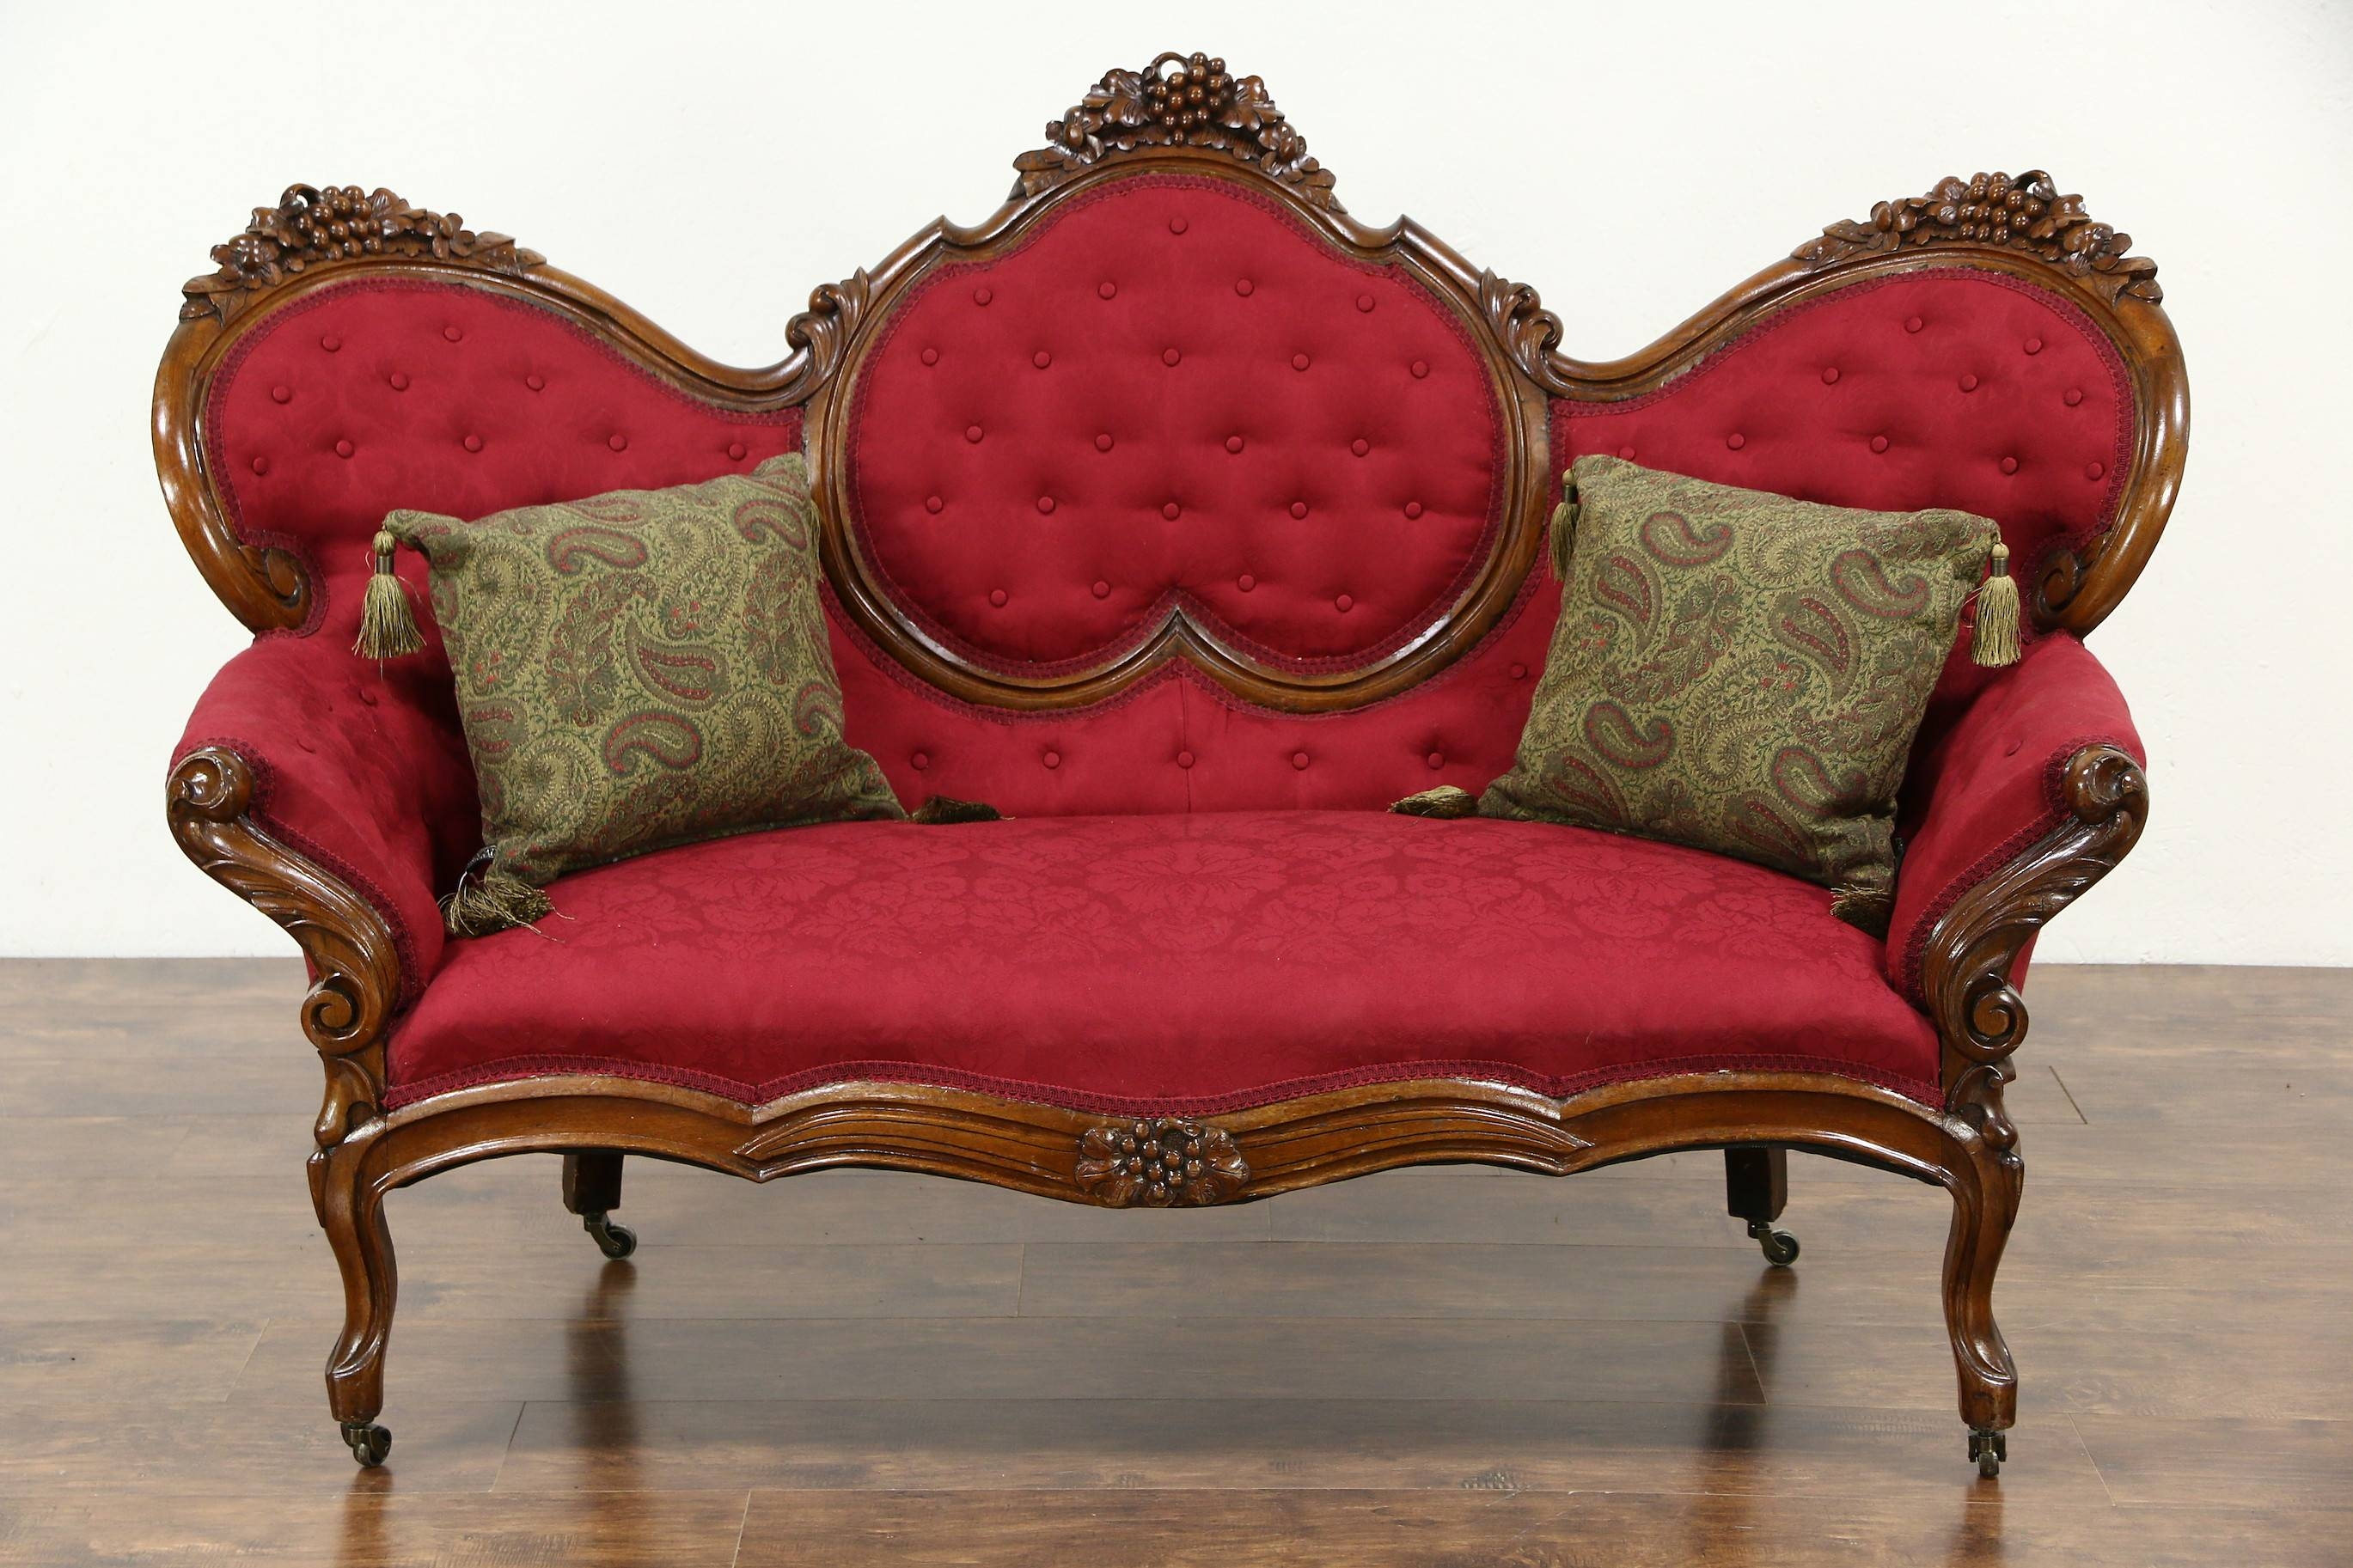 Sold - Victorian 1860's Antique Grape Carved Walnut Sofa, New intended for Antique Sofa Chairs (Image 25 of 30)